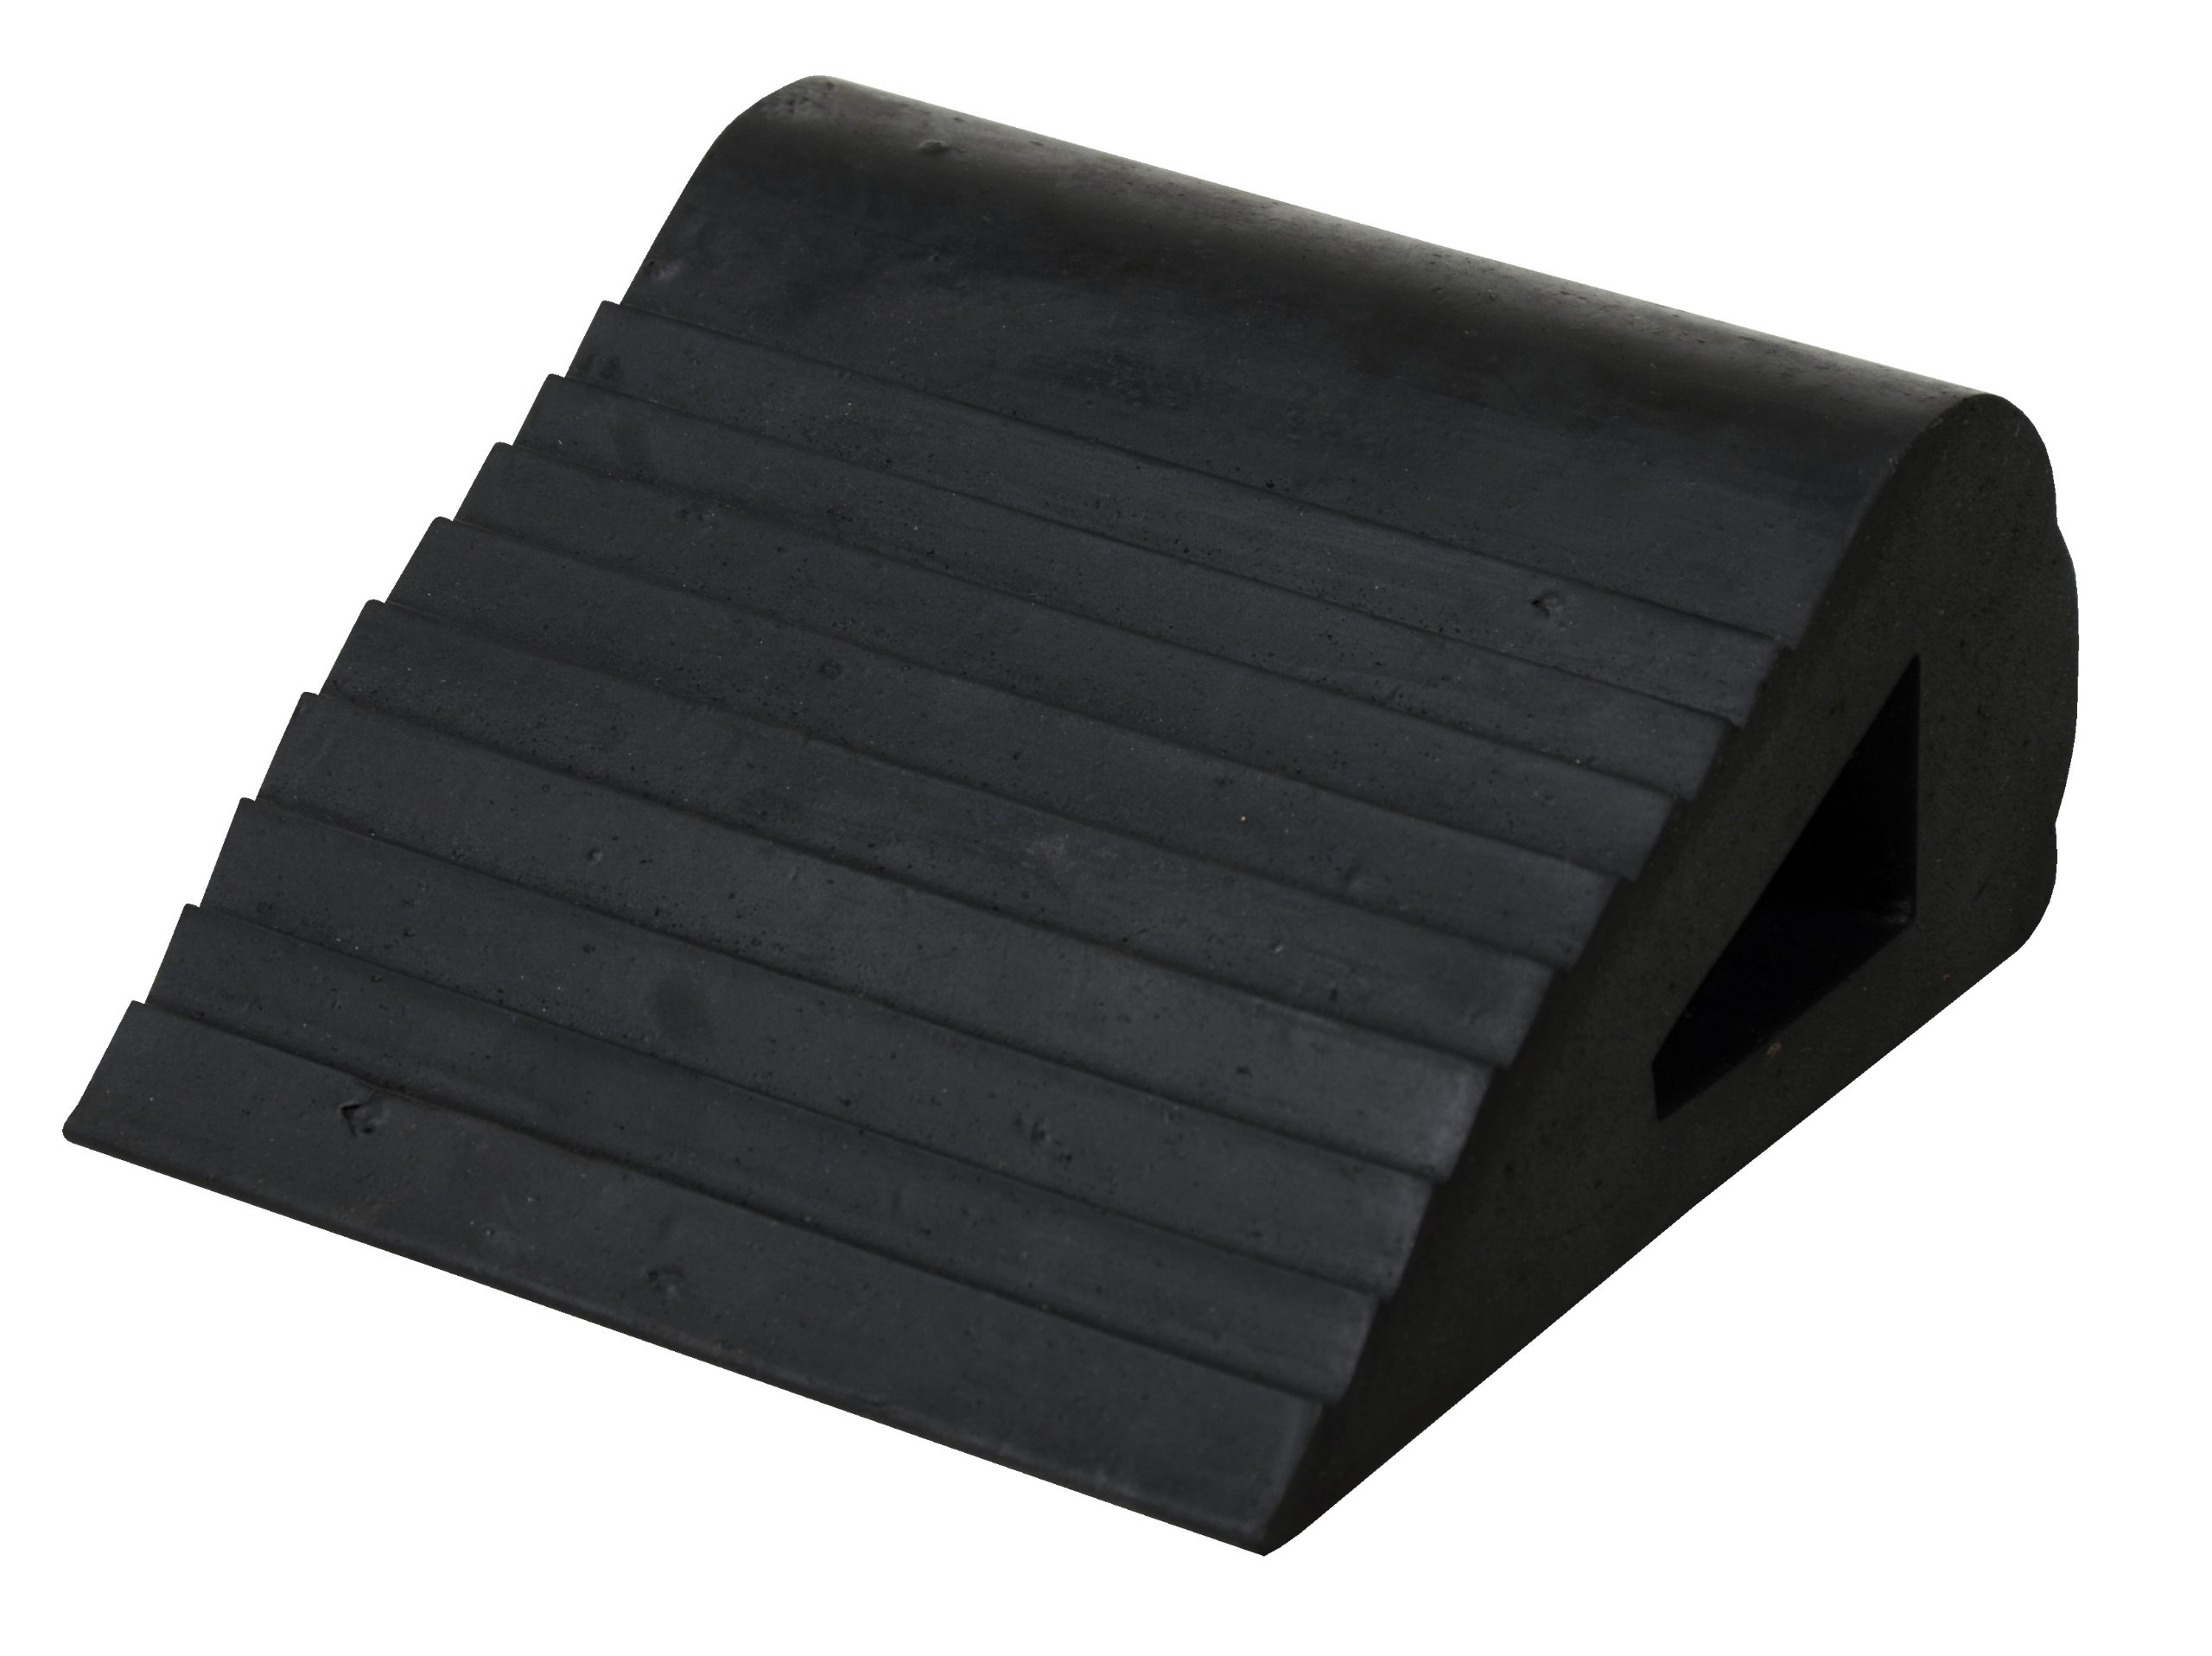 Vestil RBW-3 Industrial Rubber Wedge, 6-1/2'' L x 6'' W x 3-1/4'' H